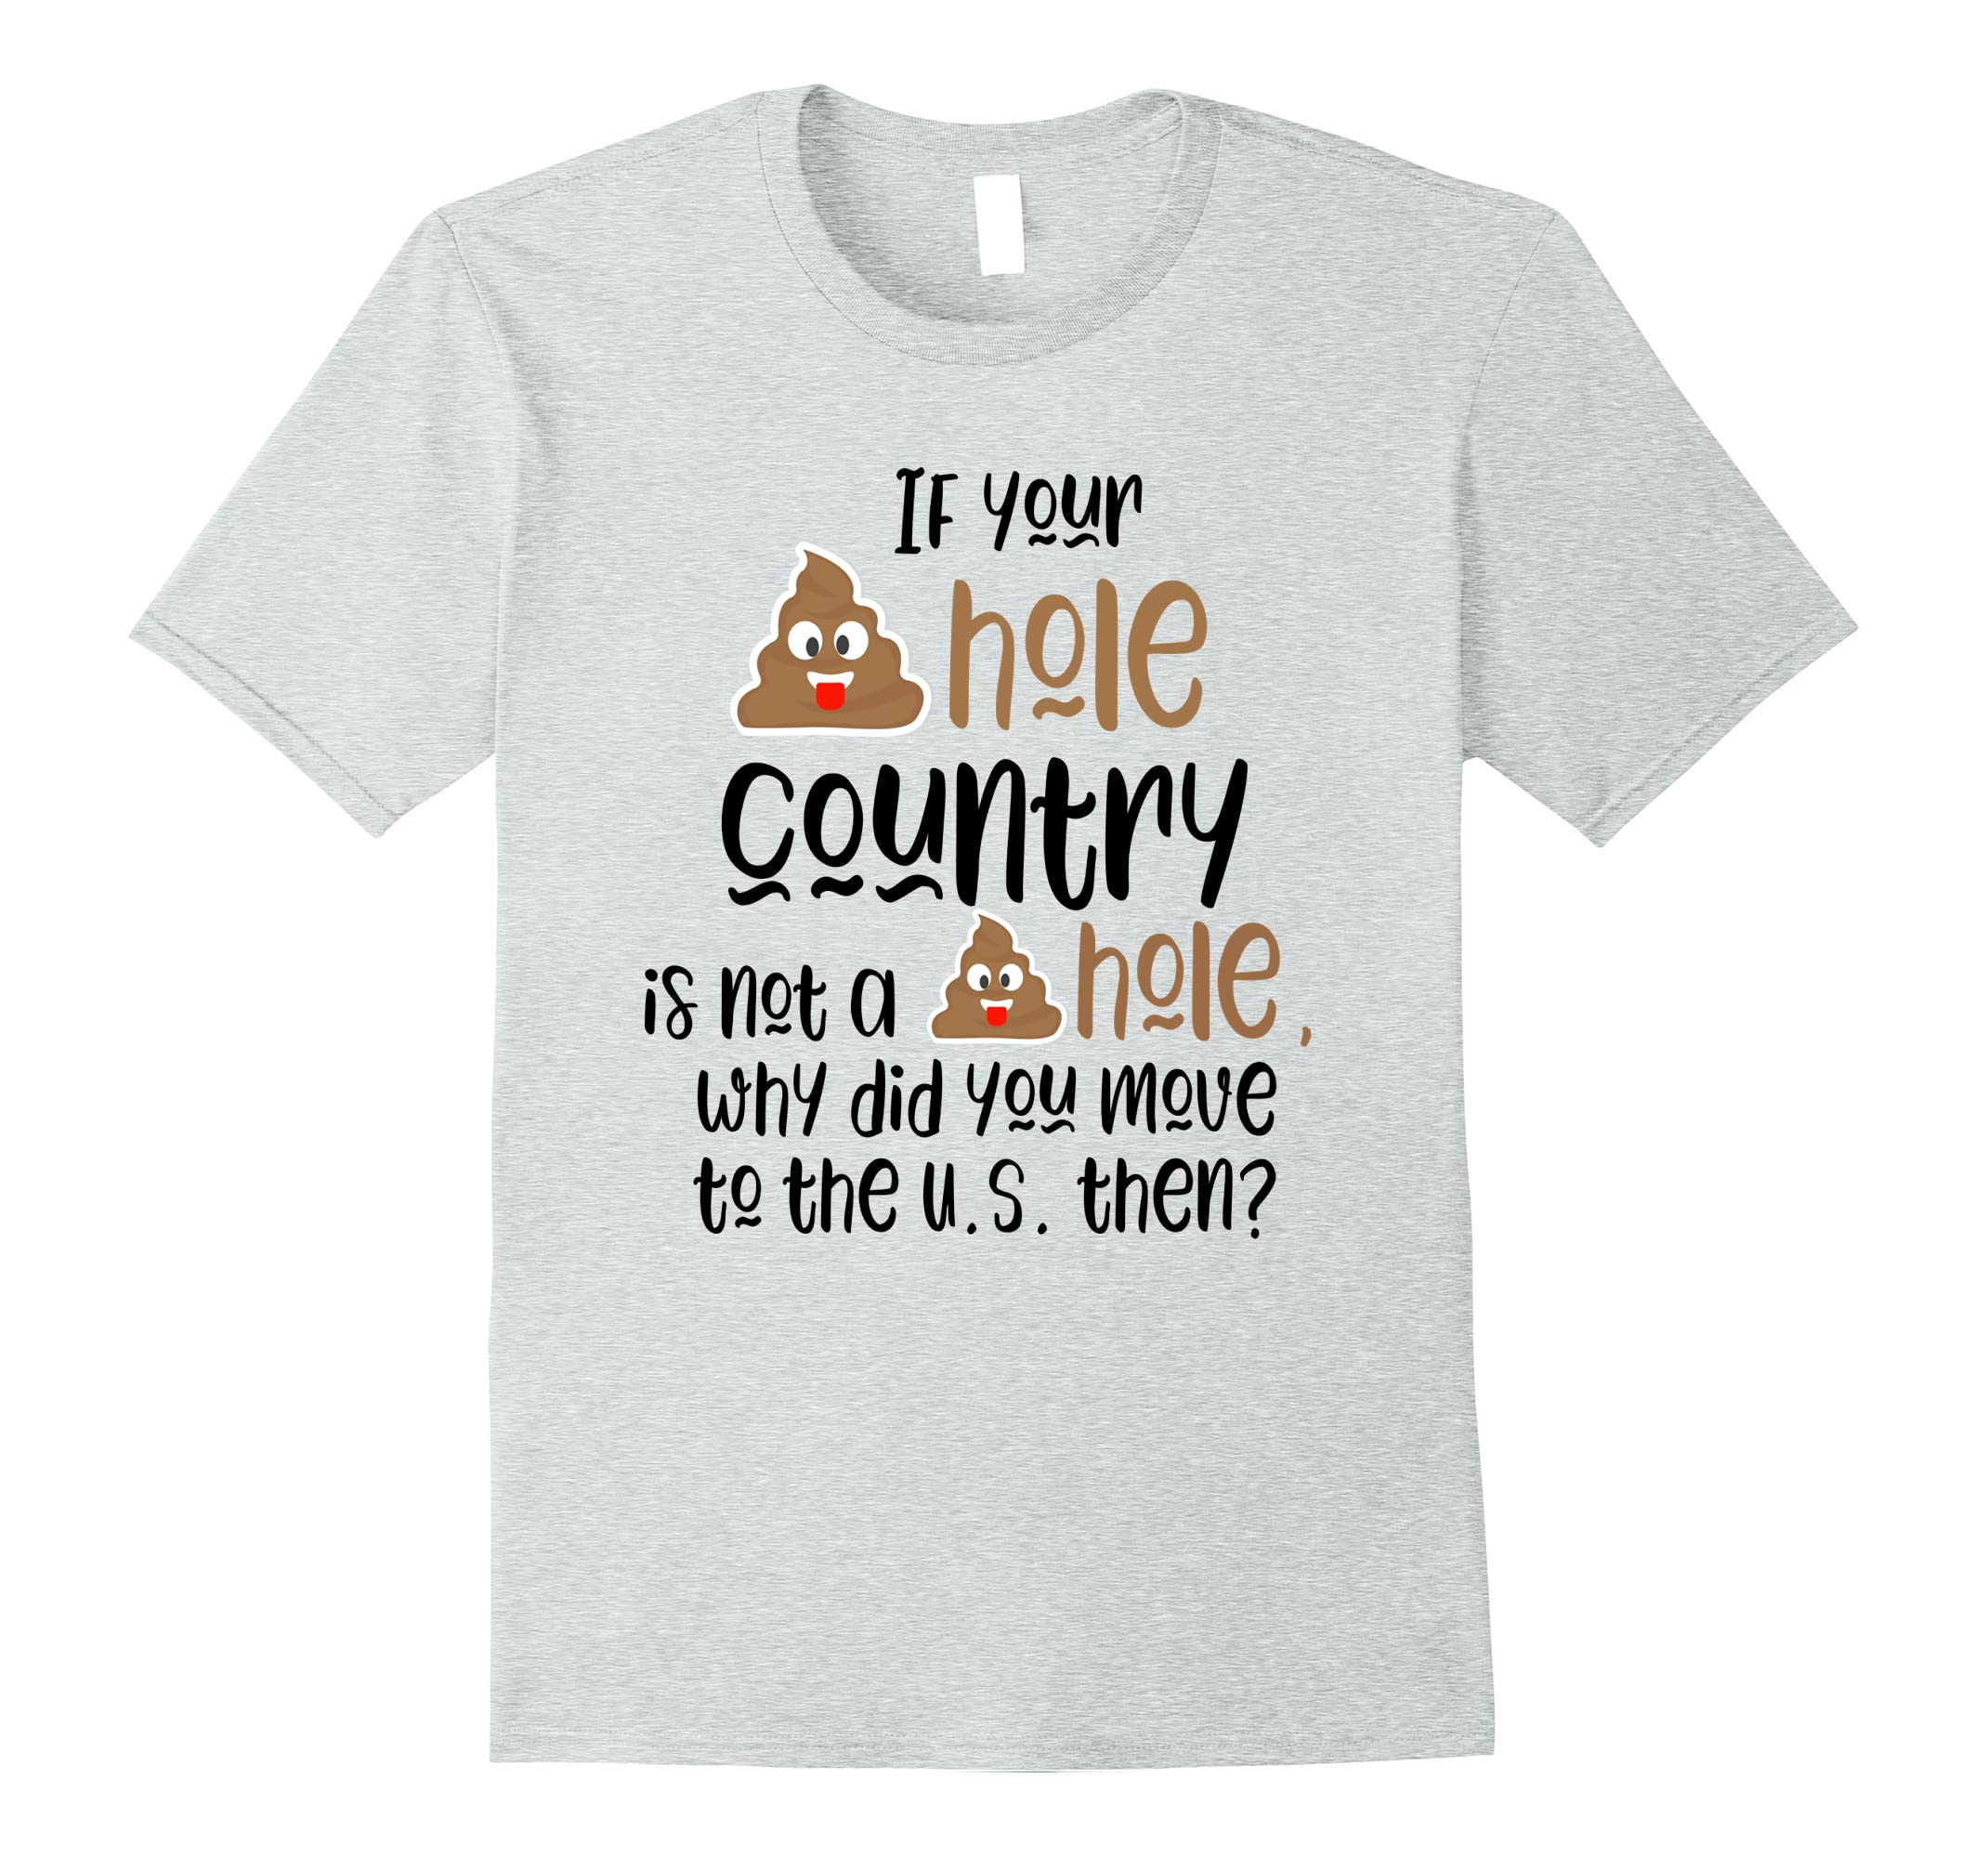 S—hole Country Funny Trump Quotes T Shirt for him and her-RT